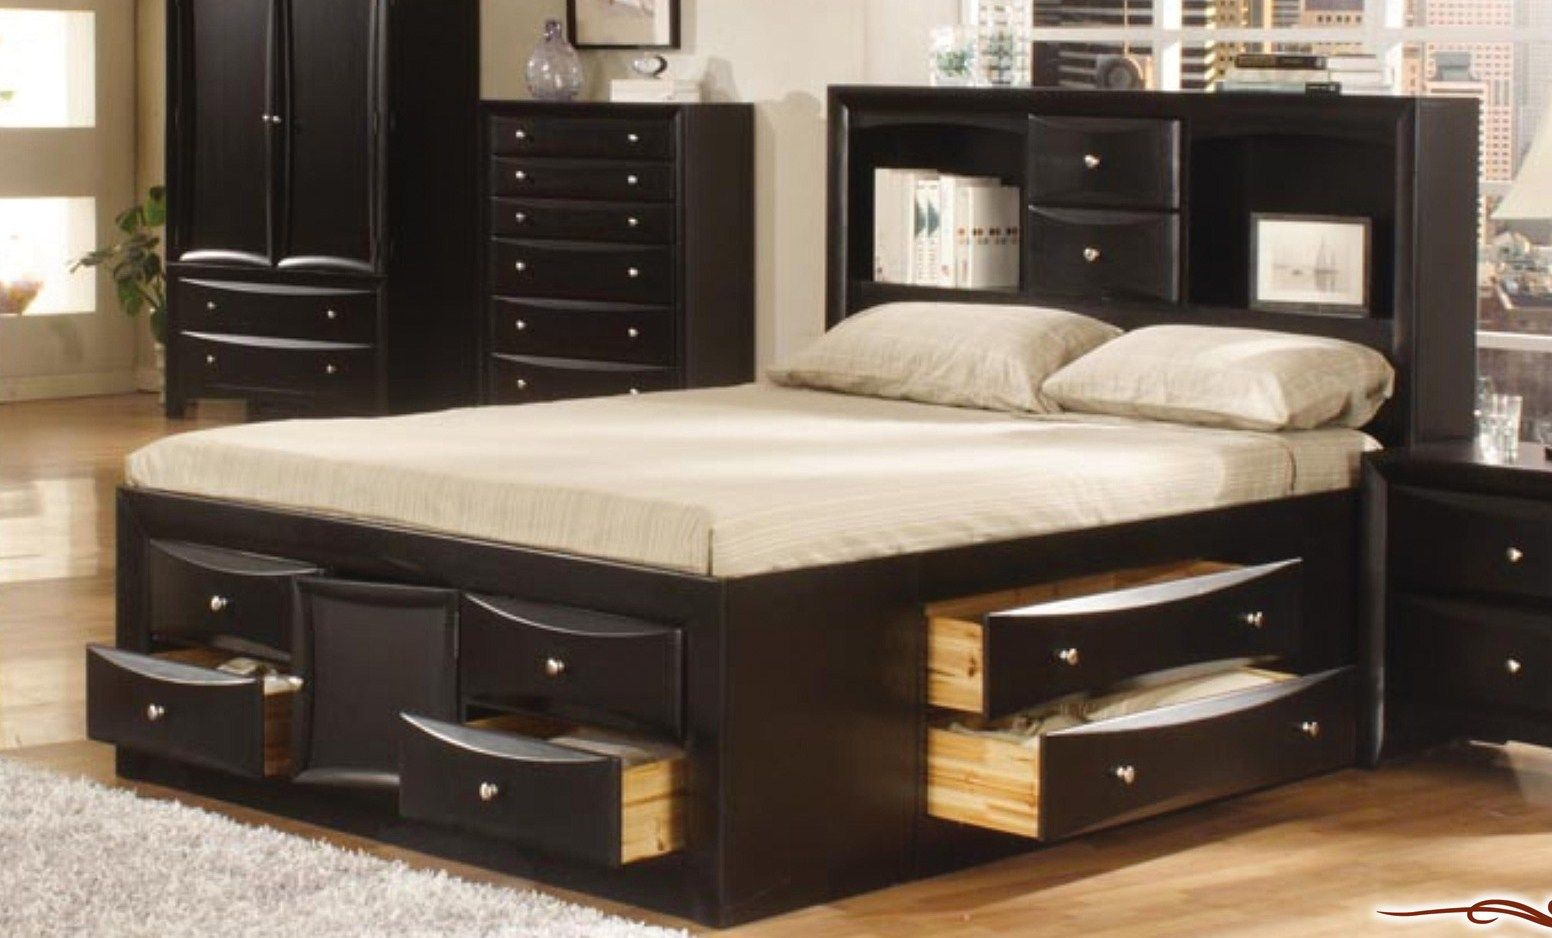 Beds With Storage Underneath Finished Bedroom Set With